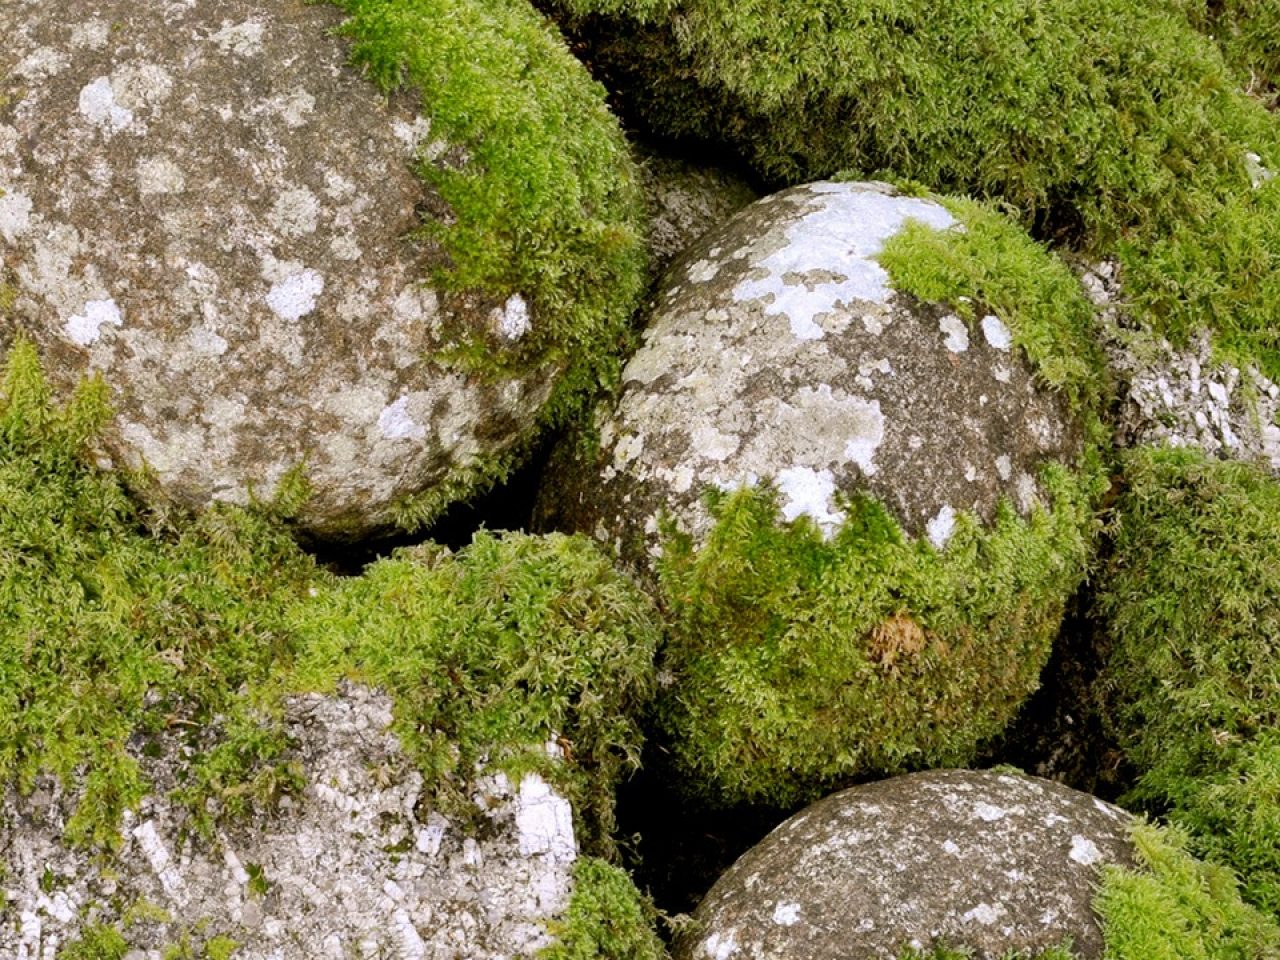 A chain of mossy stones as a garden feature.